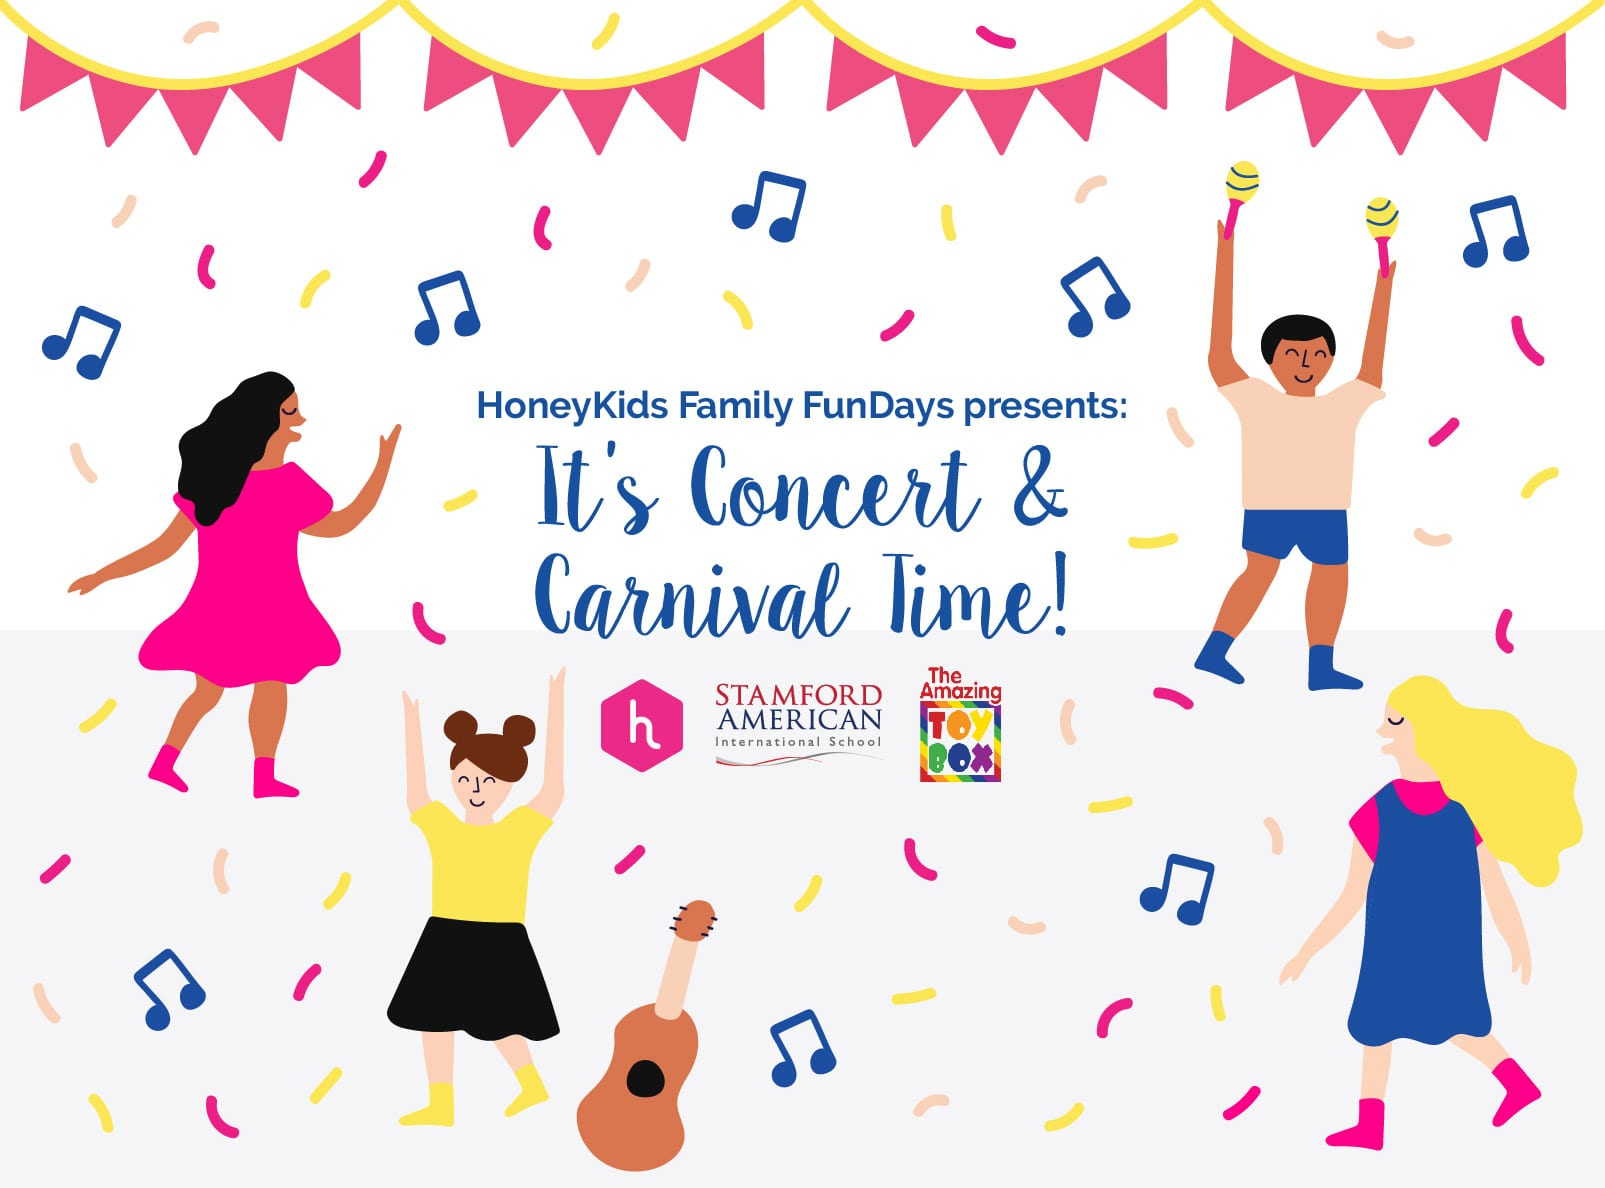 You're invited to the HoneyKids Family FunDays concert and carnival!